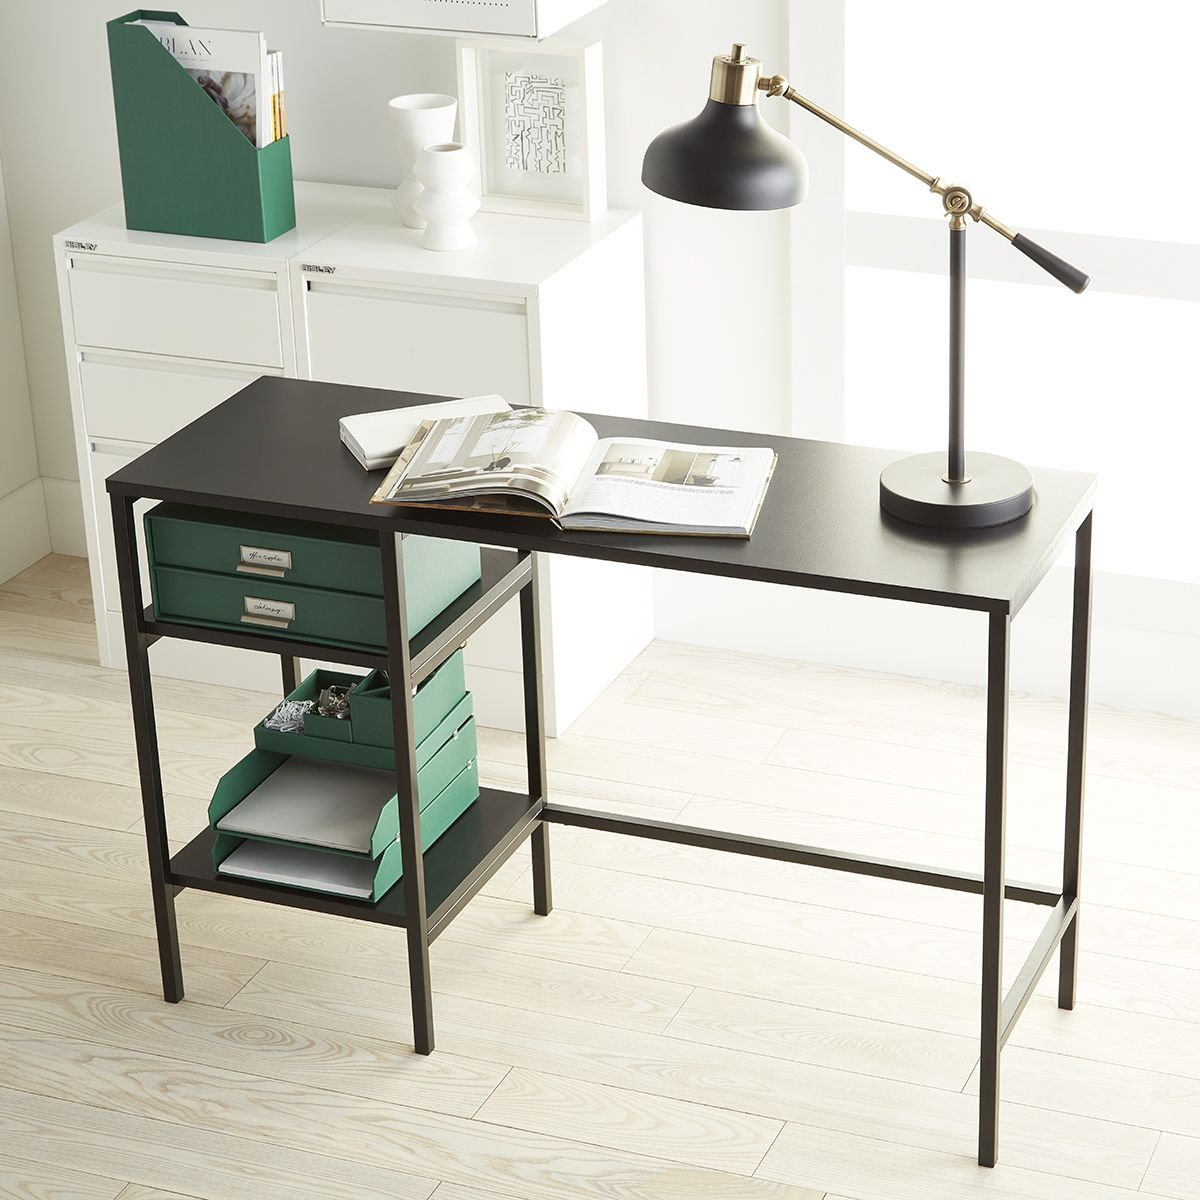 The Perfect Work Desk Is An Organized Desk Find One That S